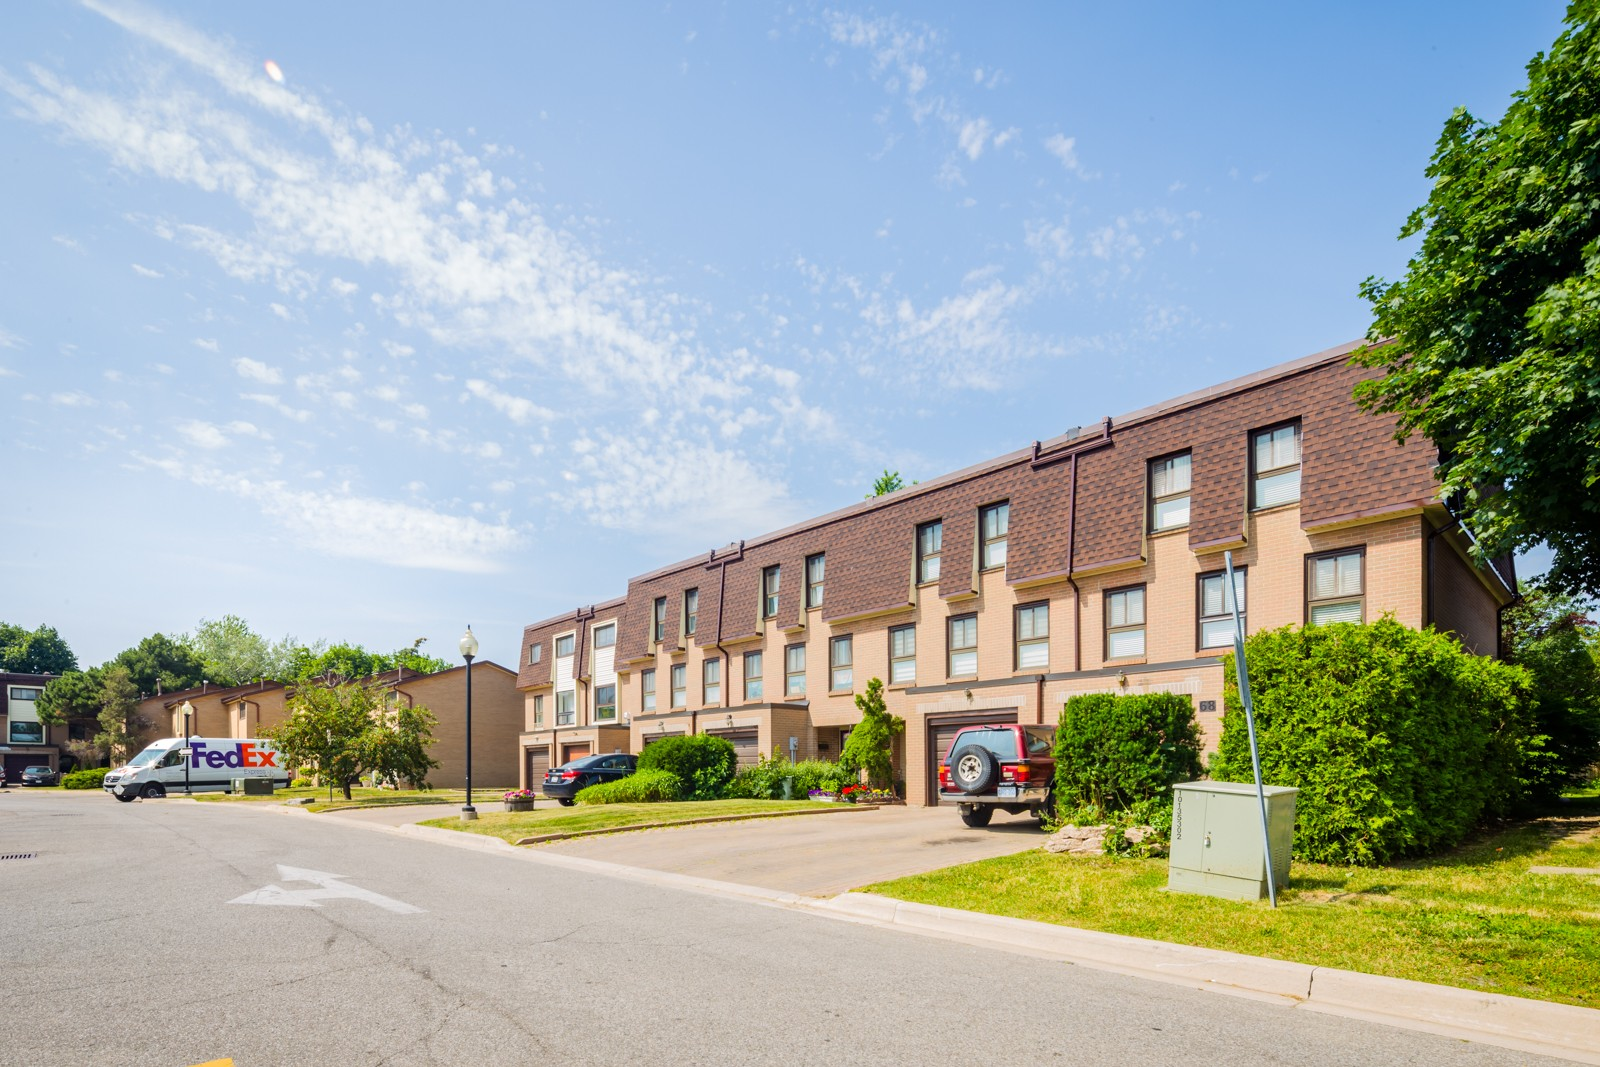 46 Dearbourne Townhouses at 46 Dearbourne Blvd, Brampton 1